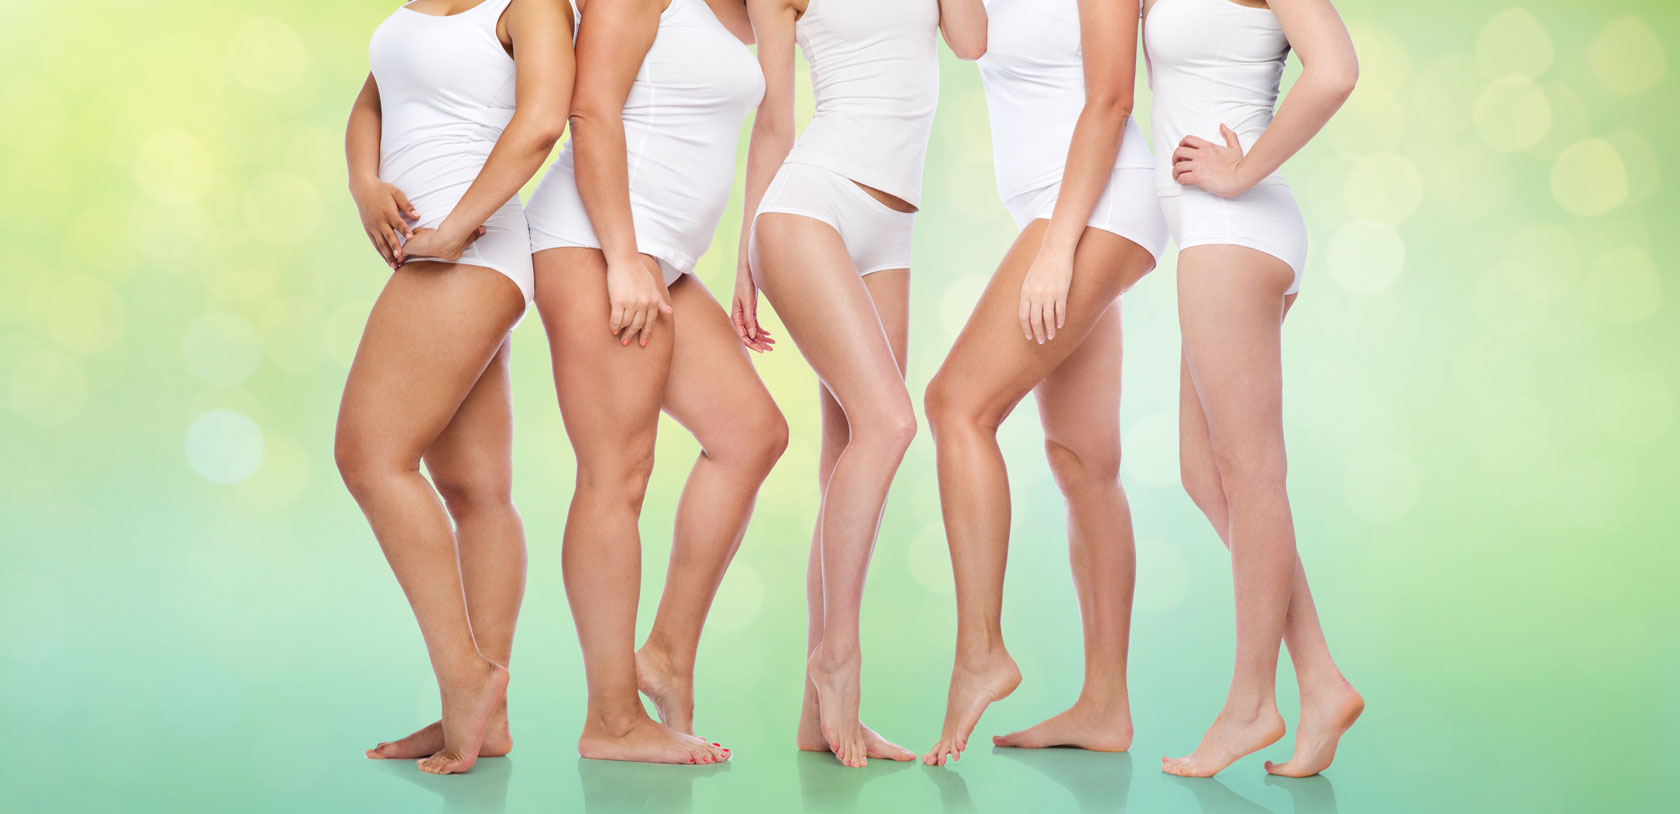 Gambe in salute e bellissime, strategia efficace anticellulite